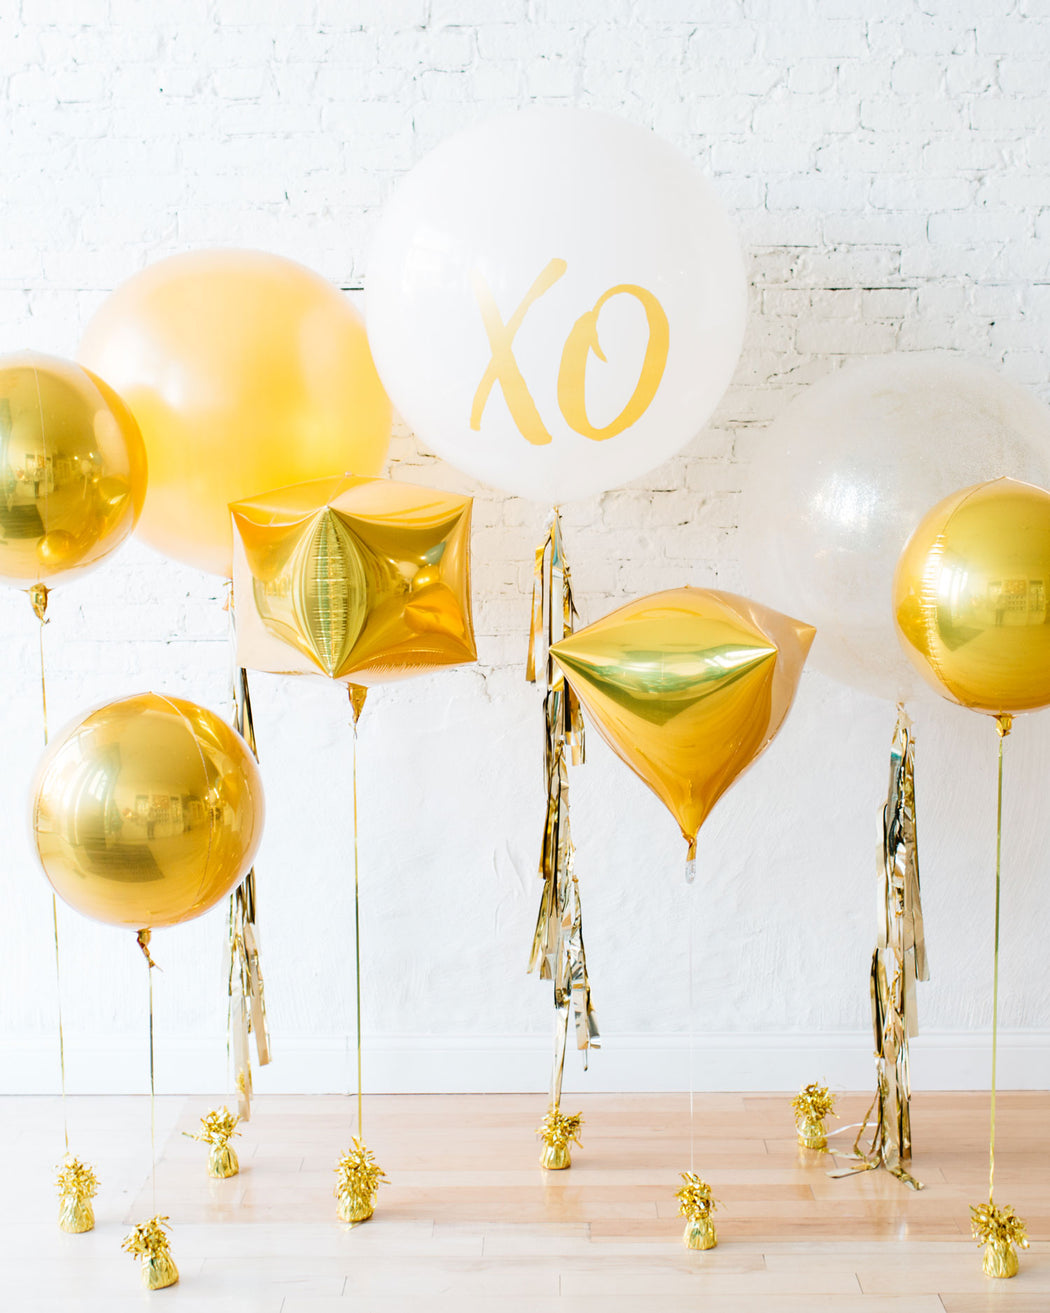 Gold & White Individual Balloons Backdrop